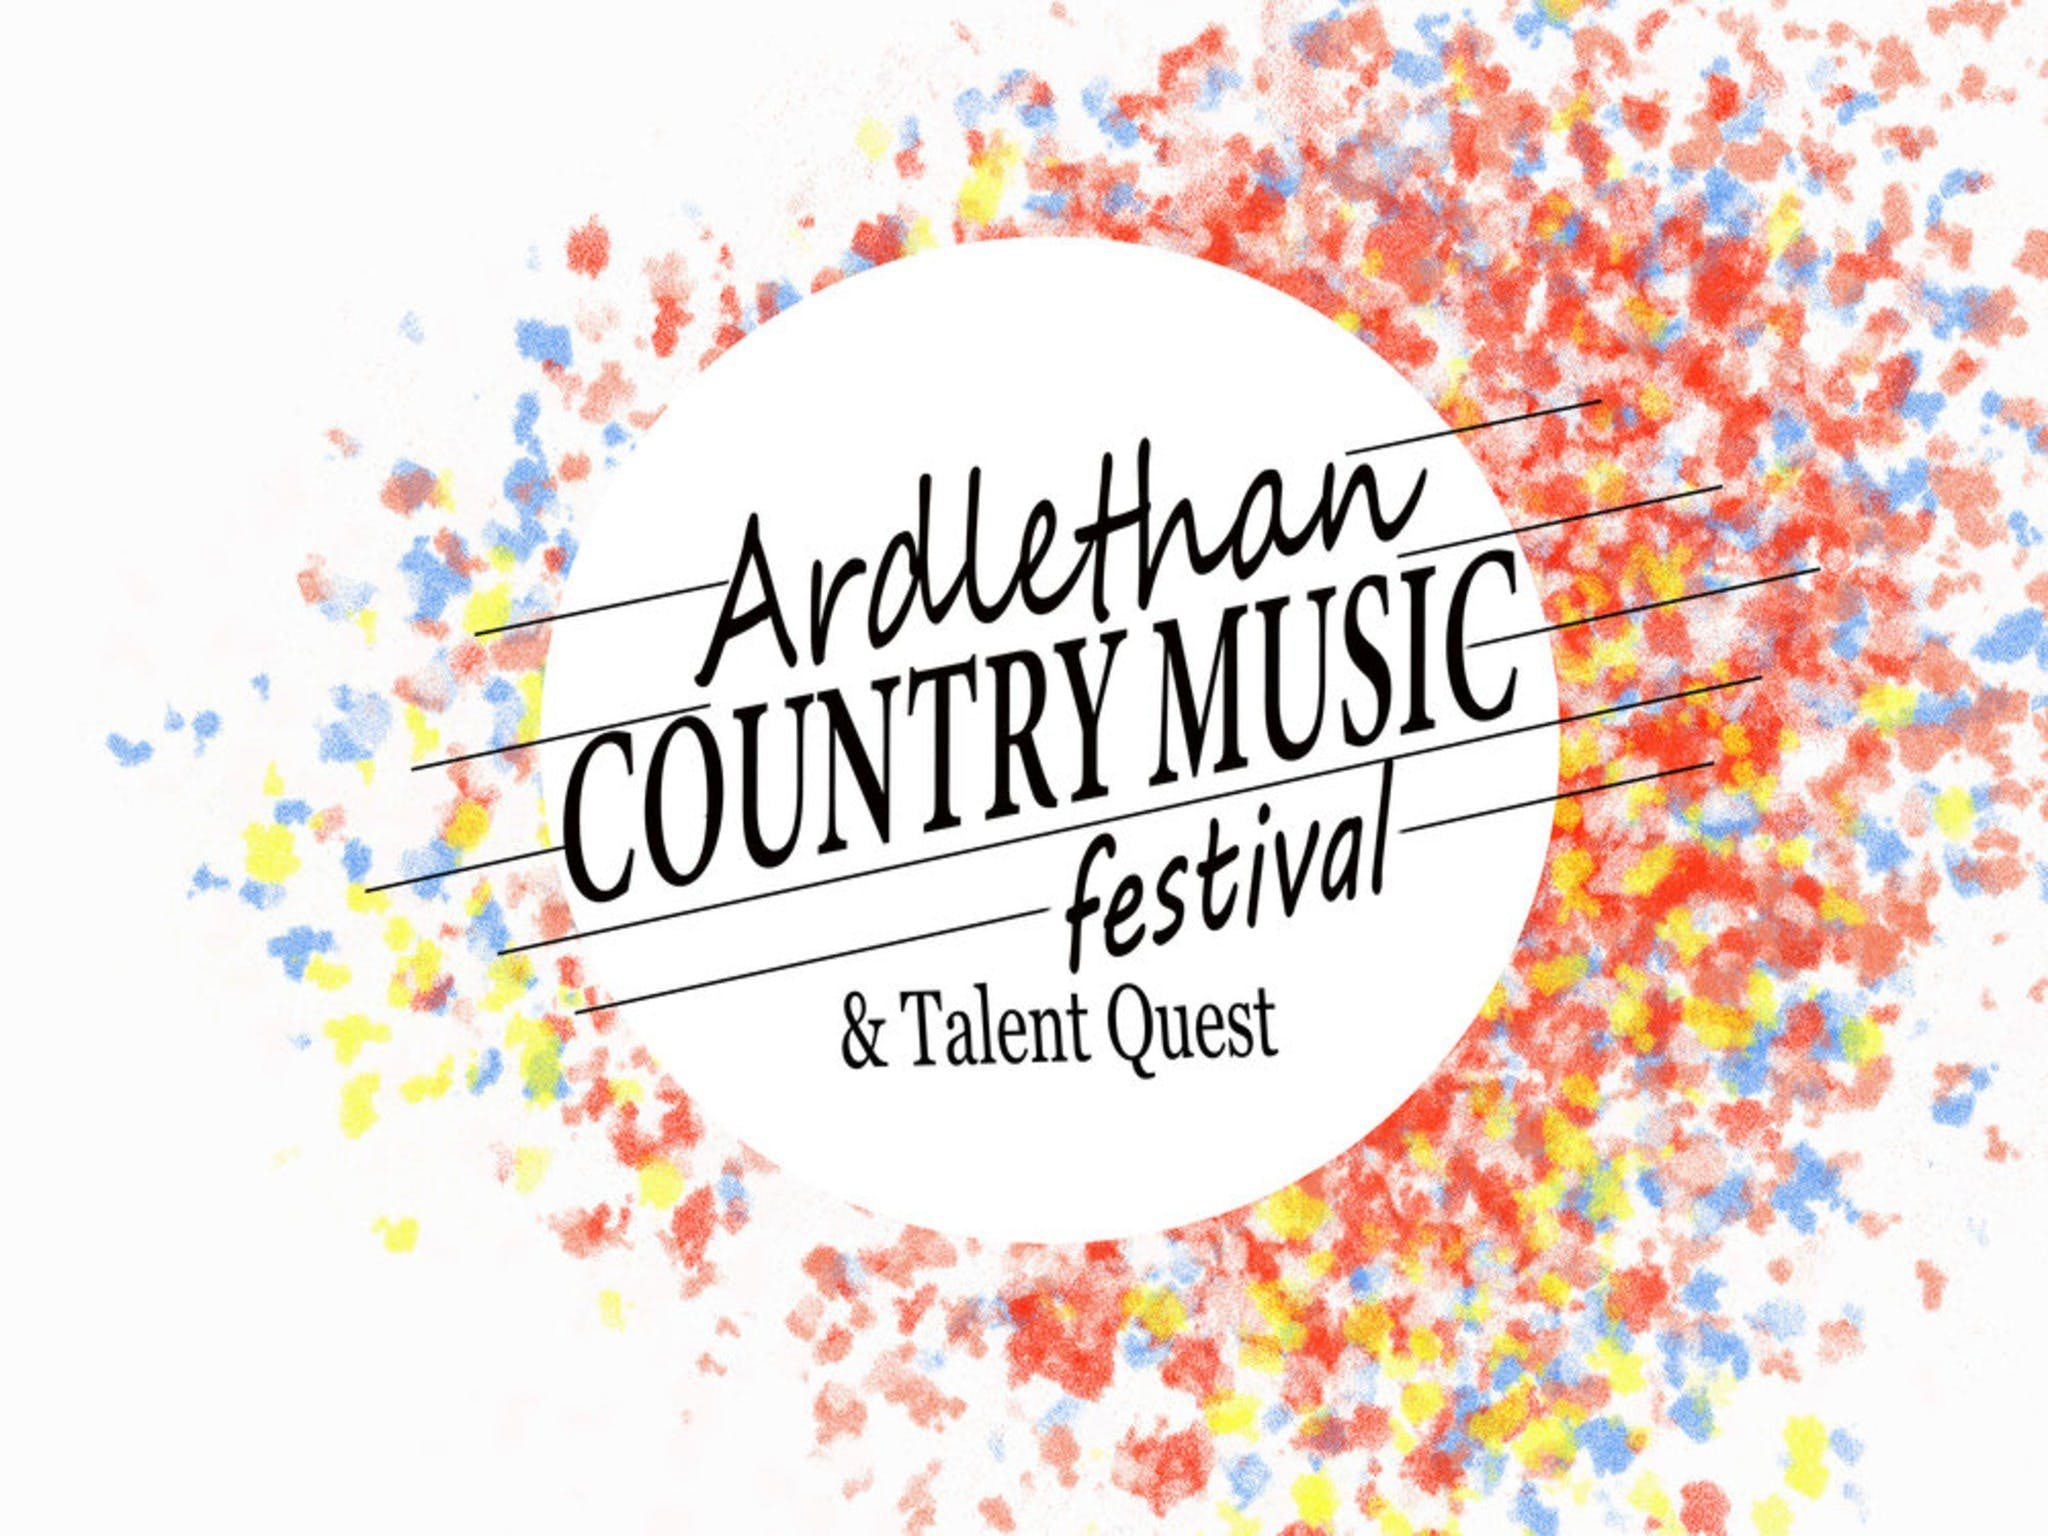 Ardlethan Country Music Festival - Accommodation Search